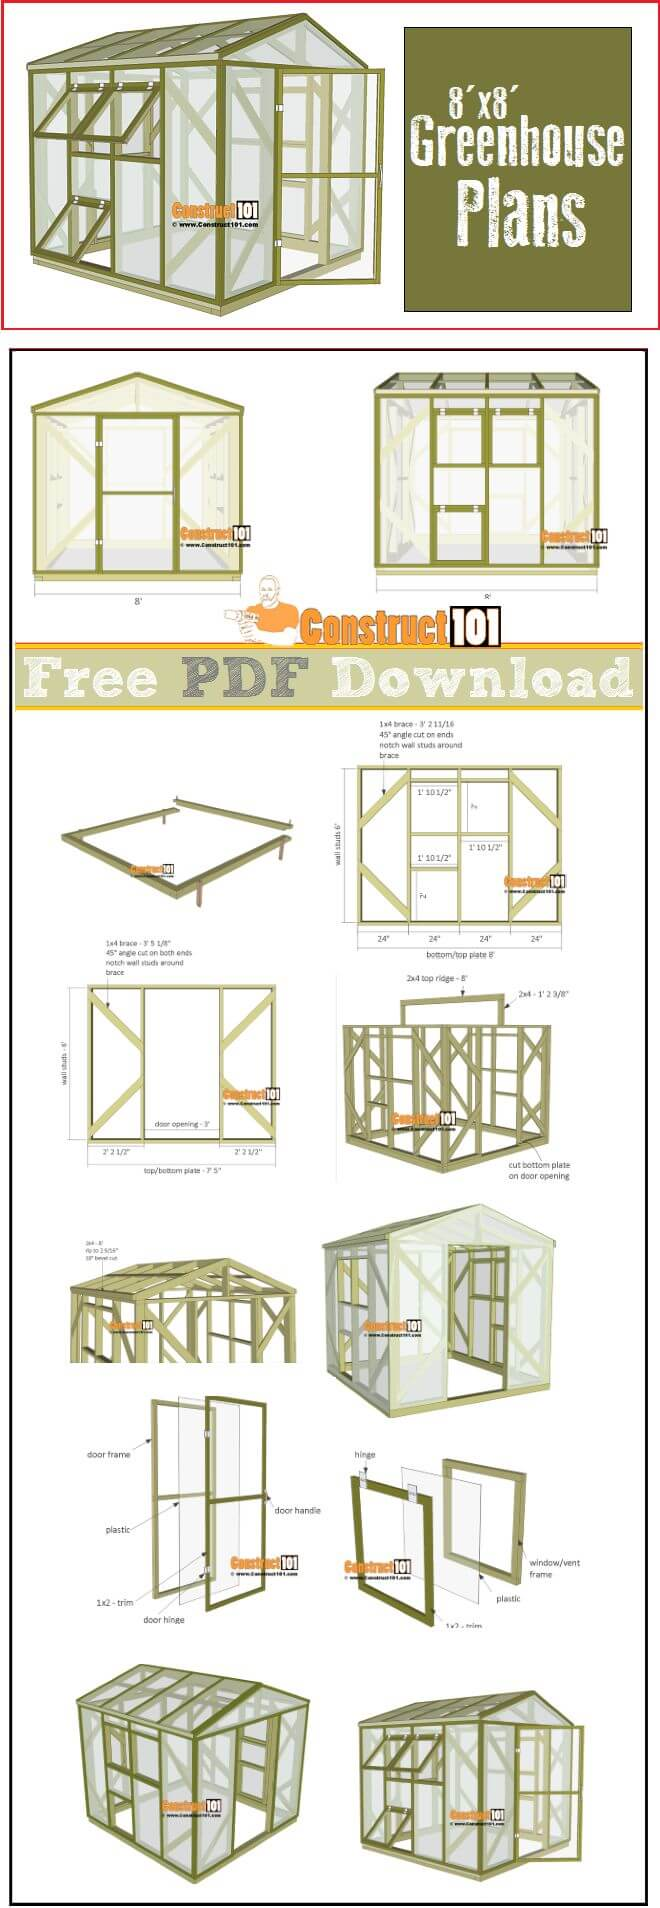 Step-By–Step Plans for a DIY Green House | Build a beautiful outdoor greenhouse | Creative Greenhouse DIY plans